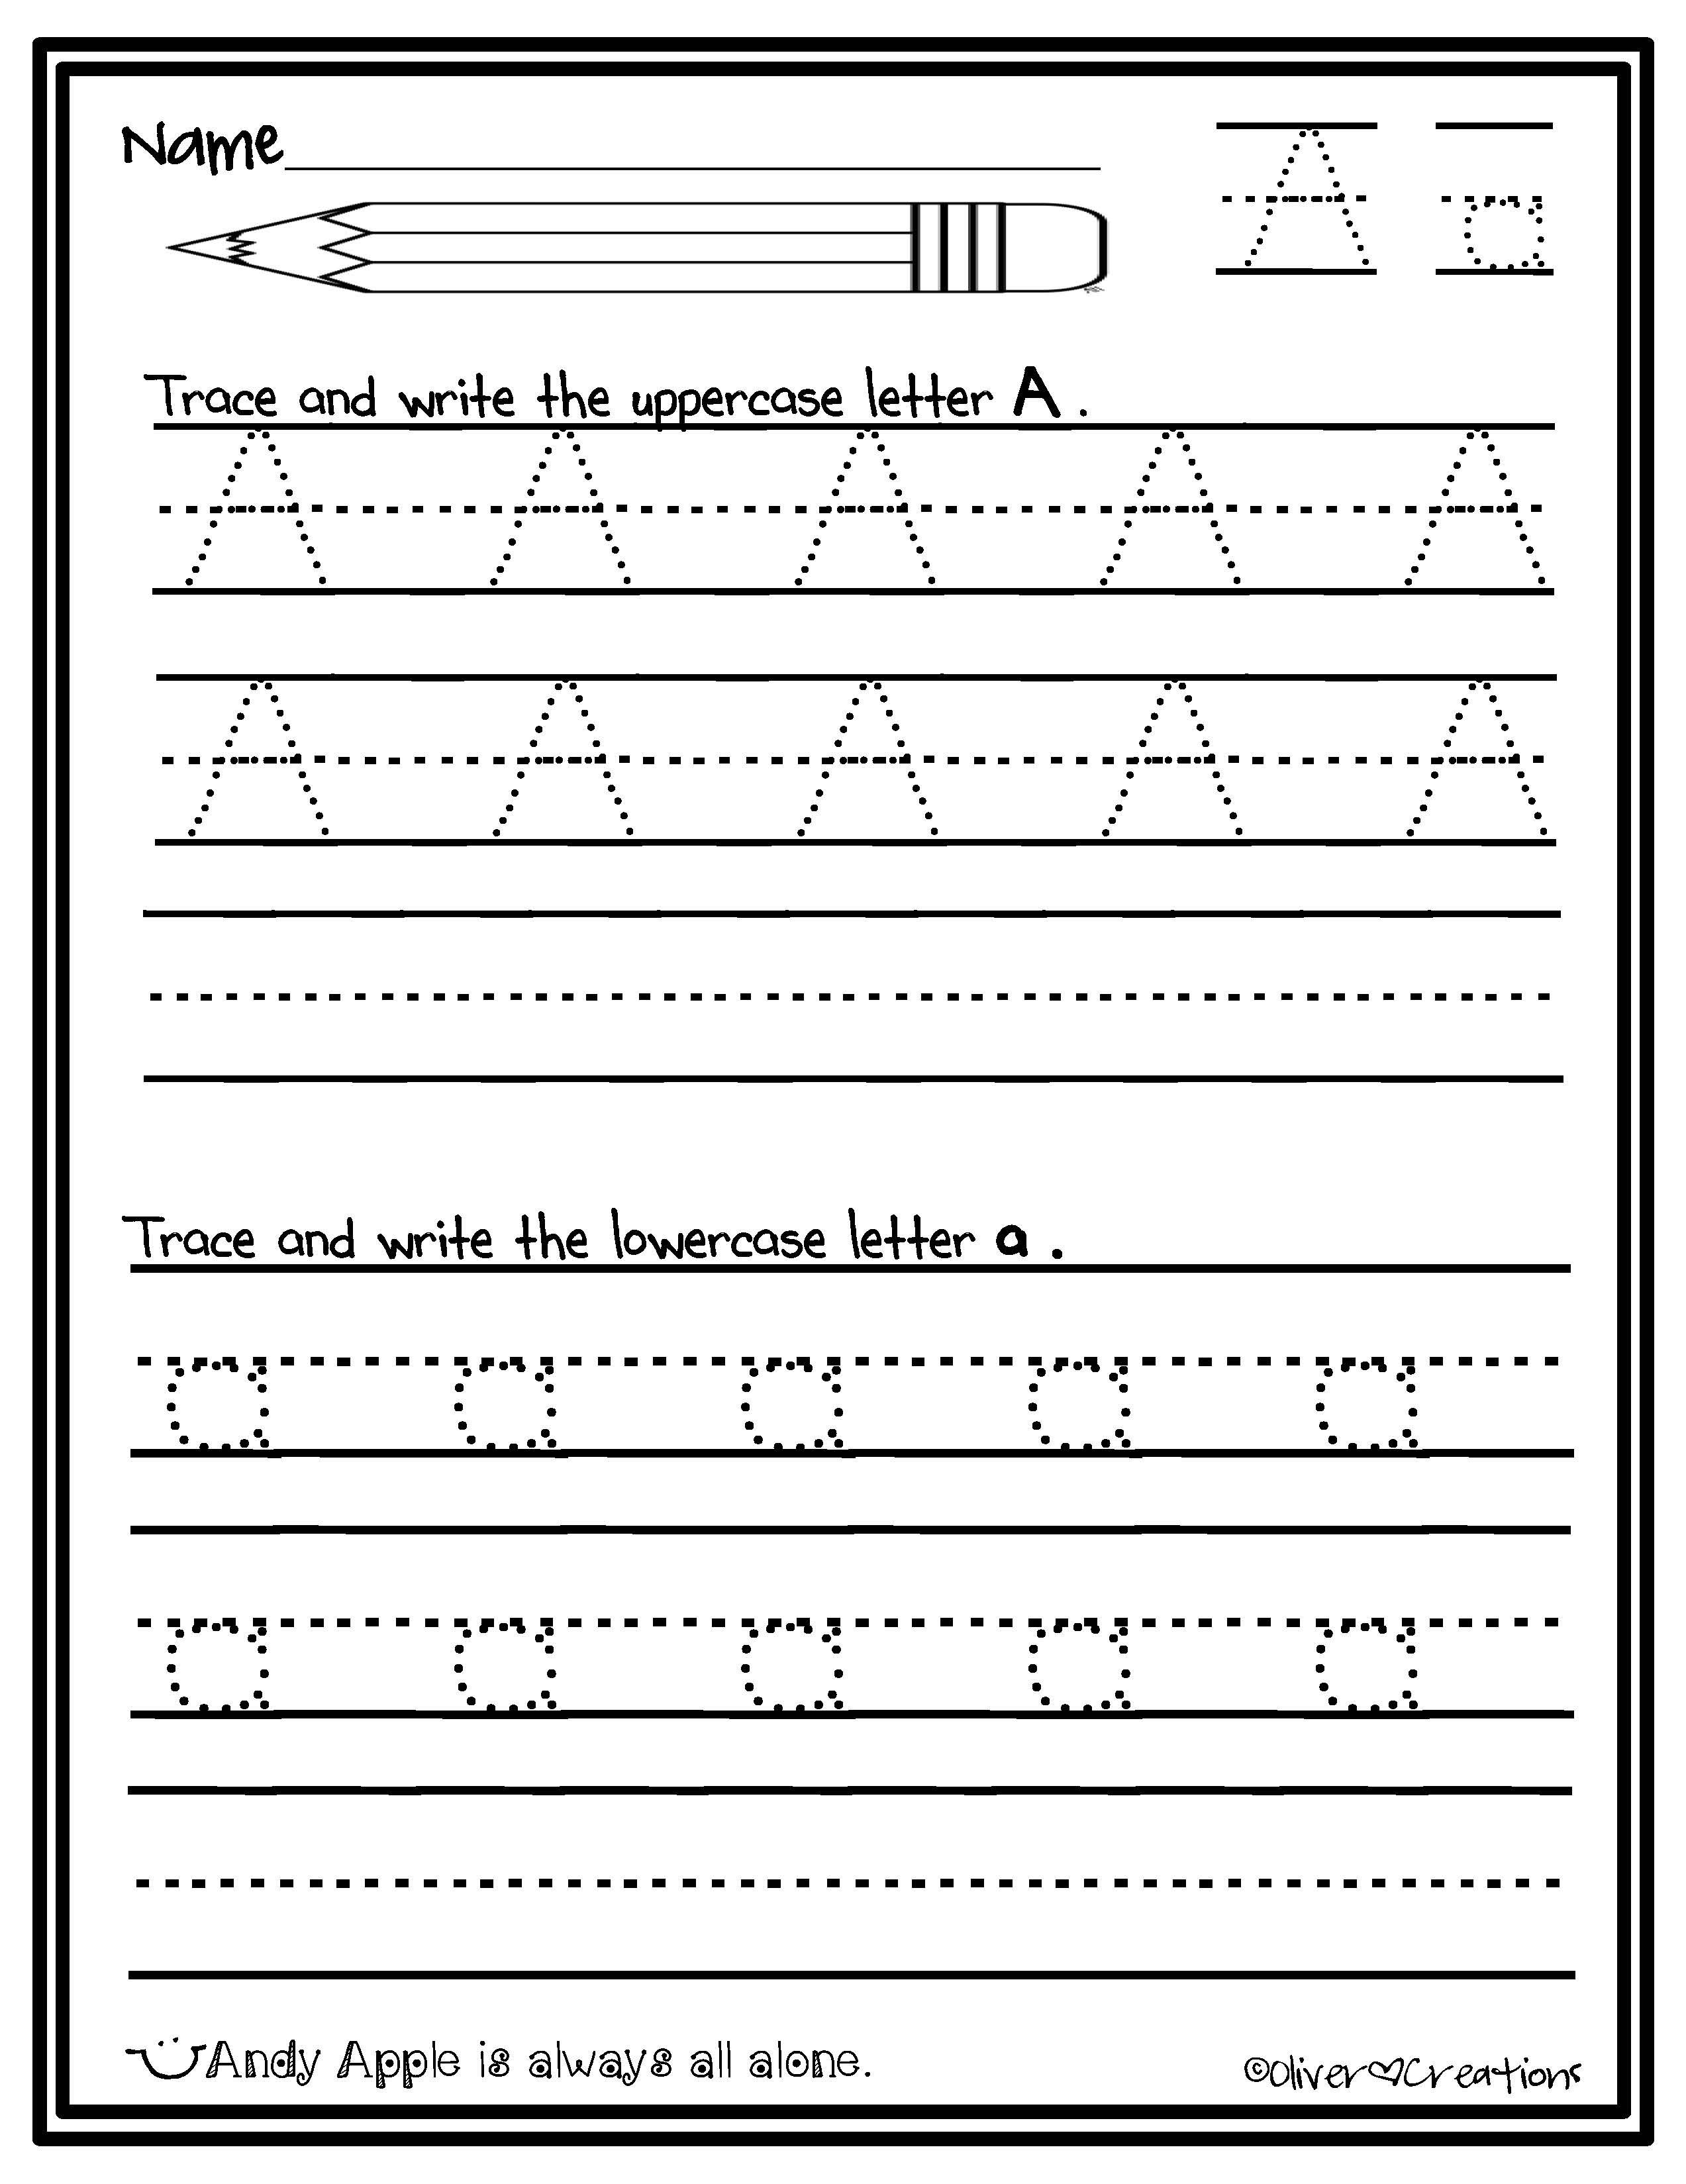 Enhancing Legible Handwriting Formation For Kids Tpt Product Letter Tracing Packet Inc Tracing Worksheets Preschool Tracing Worksheets Handwriting Worksheets [ 3298 x 2546 Pixel ]